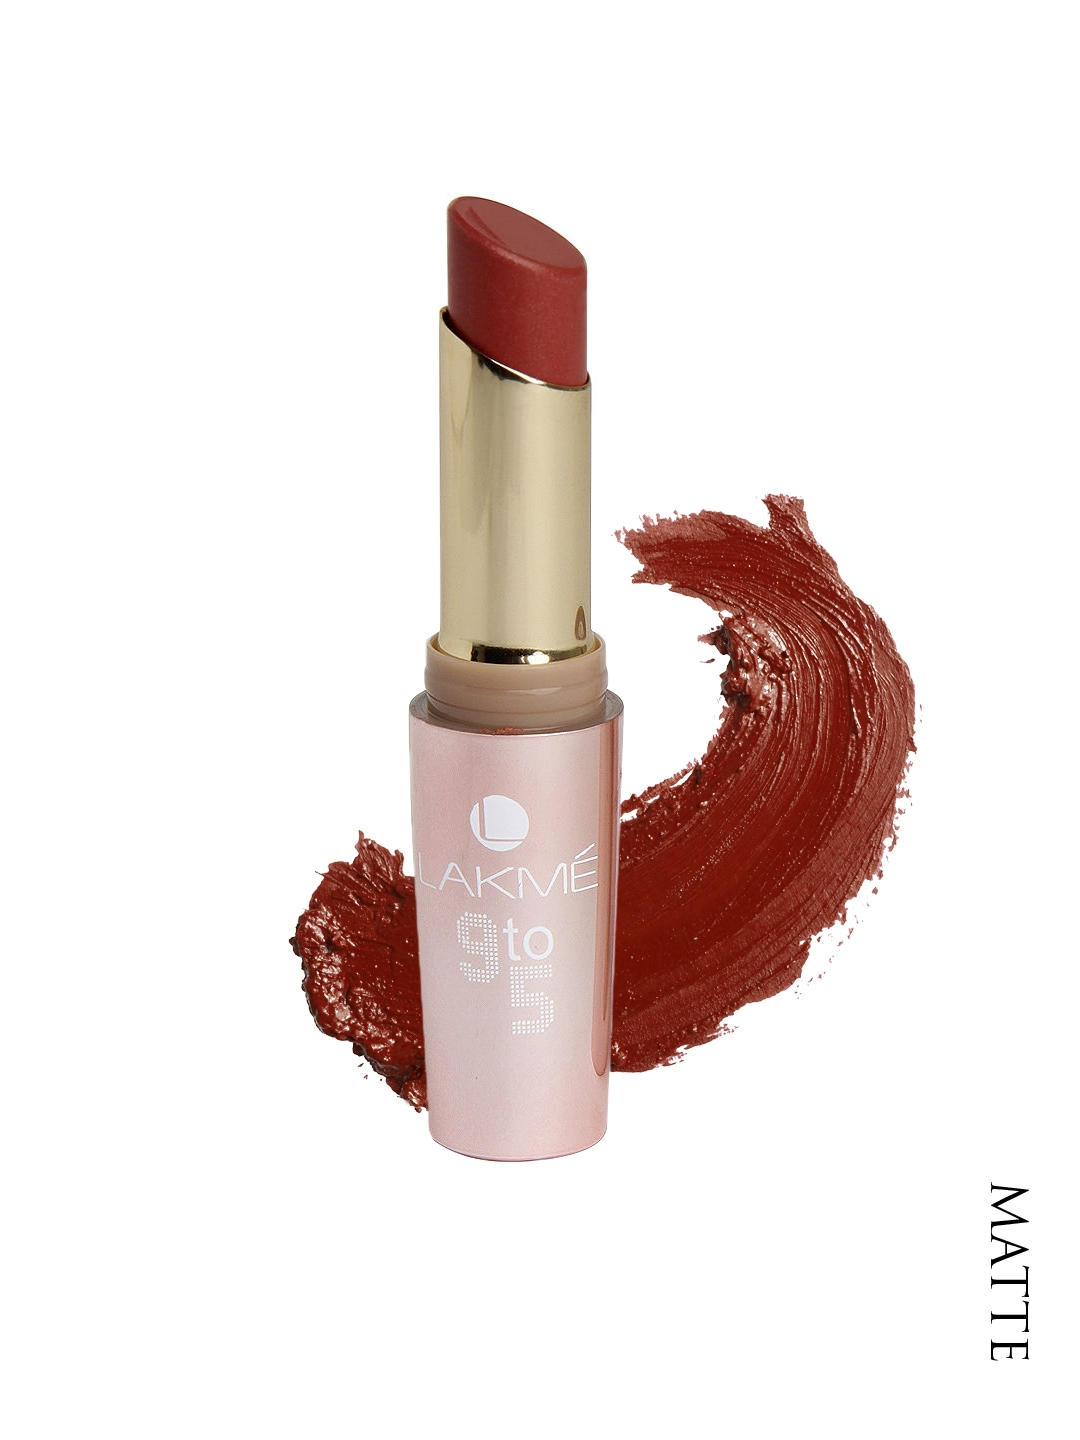 Colour care london lipstick price - Colour Care London Lipstick Price 54